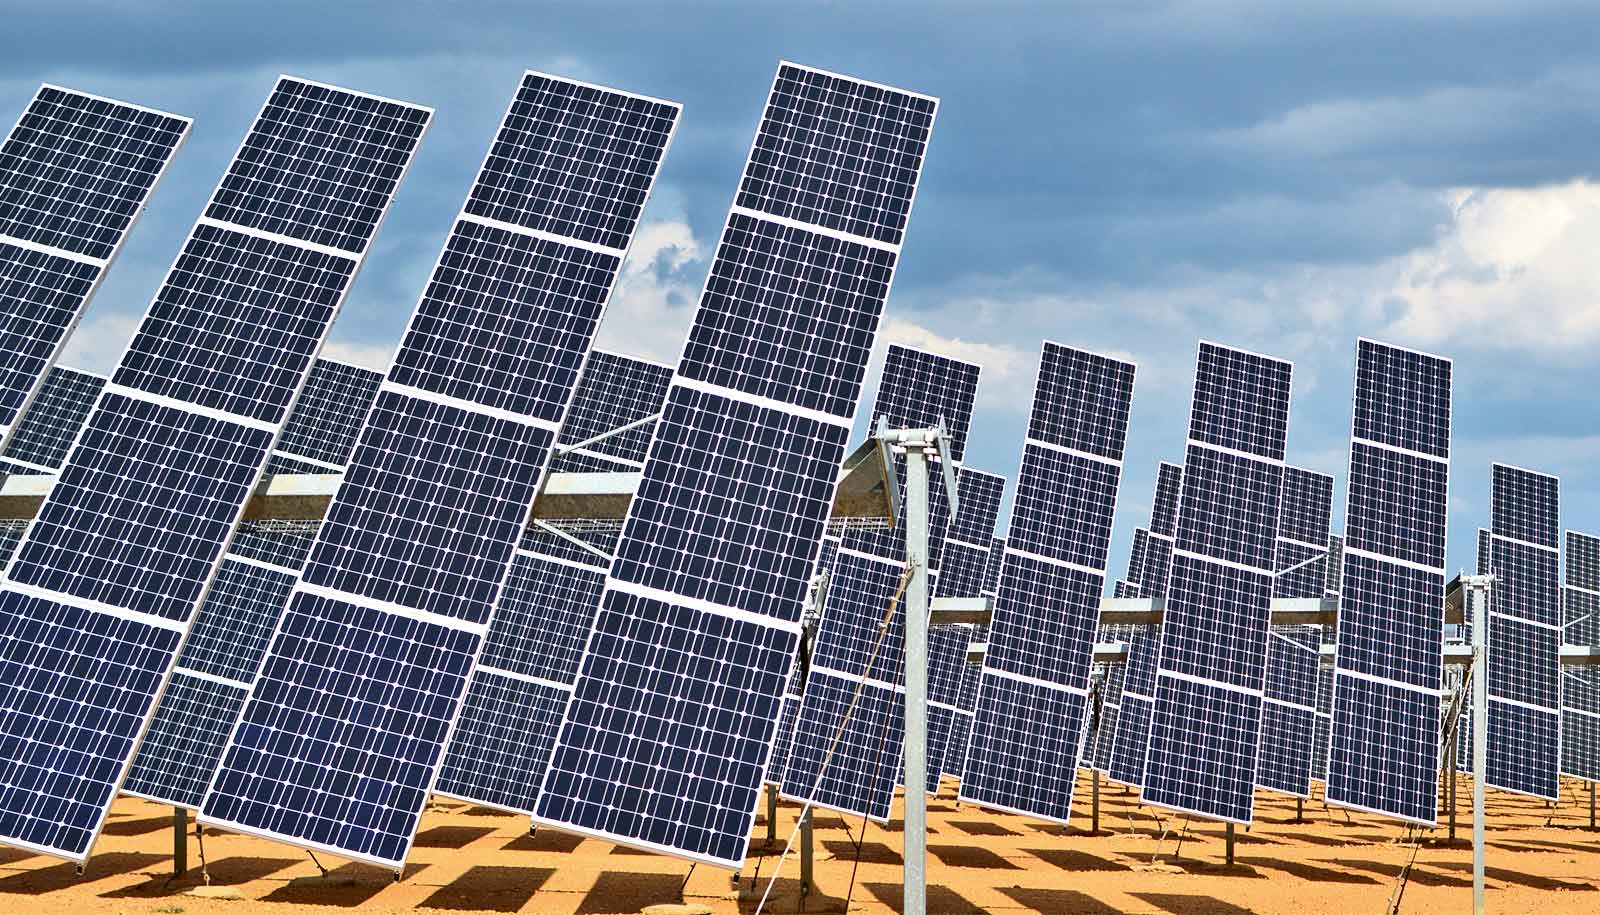 Carbon Nanotubes might be the Secret Boost Solar Energy has been looking for